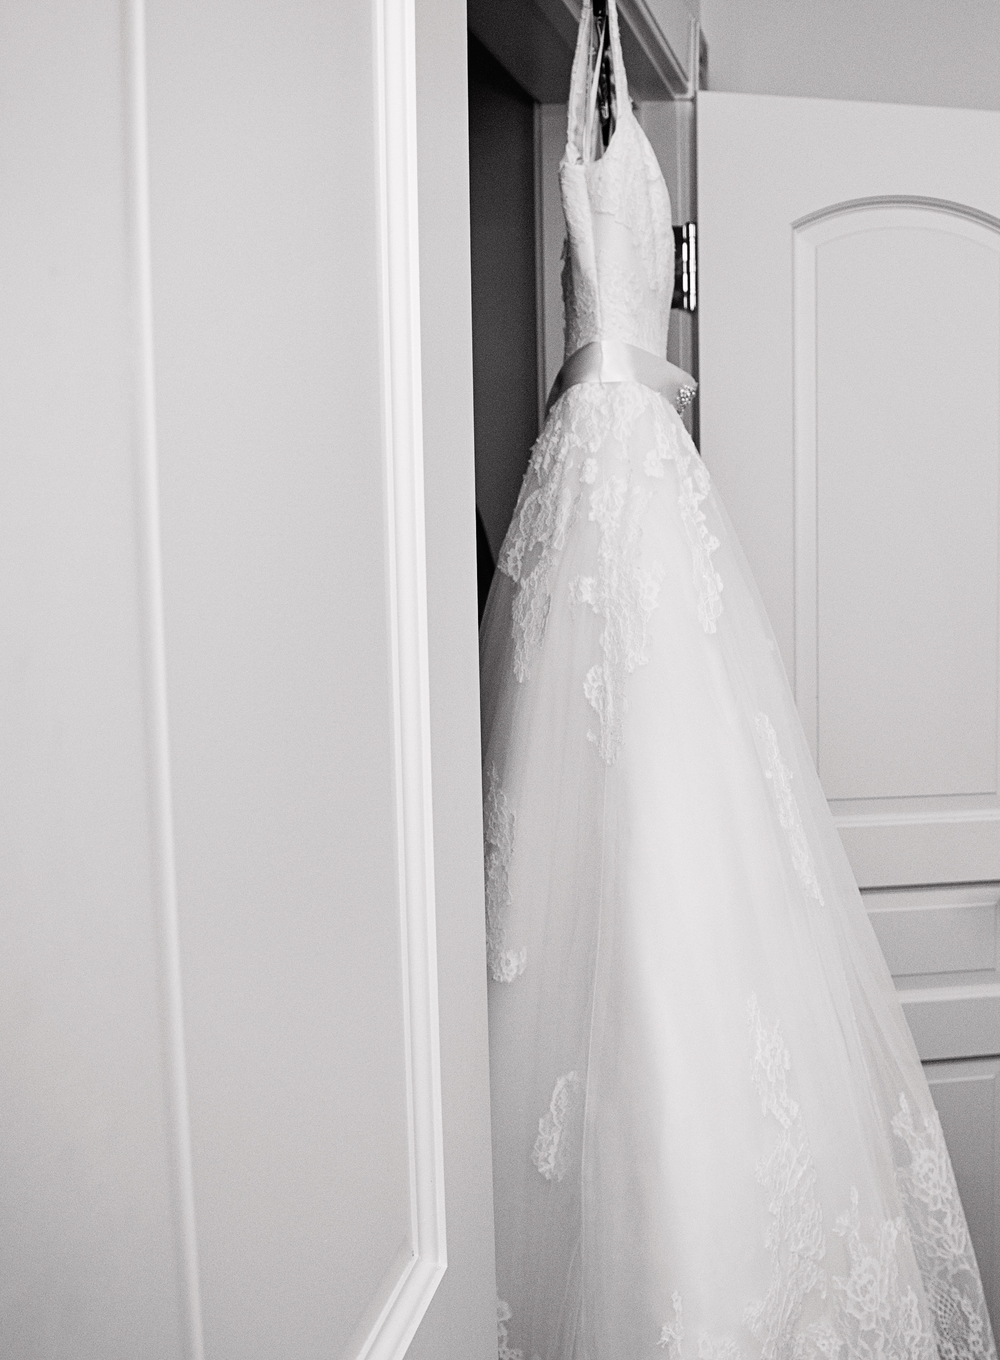 Angela_Chicoski_CT_wedding_photographer_077.jpg